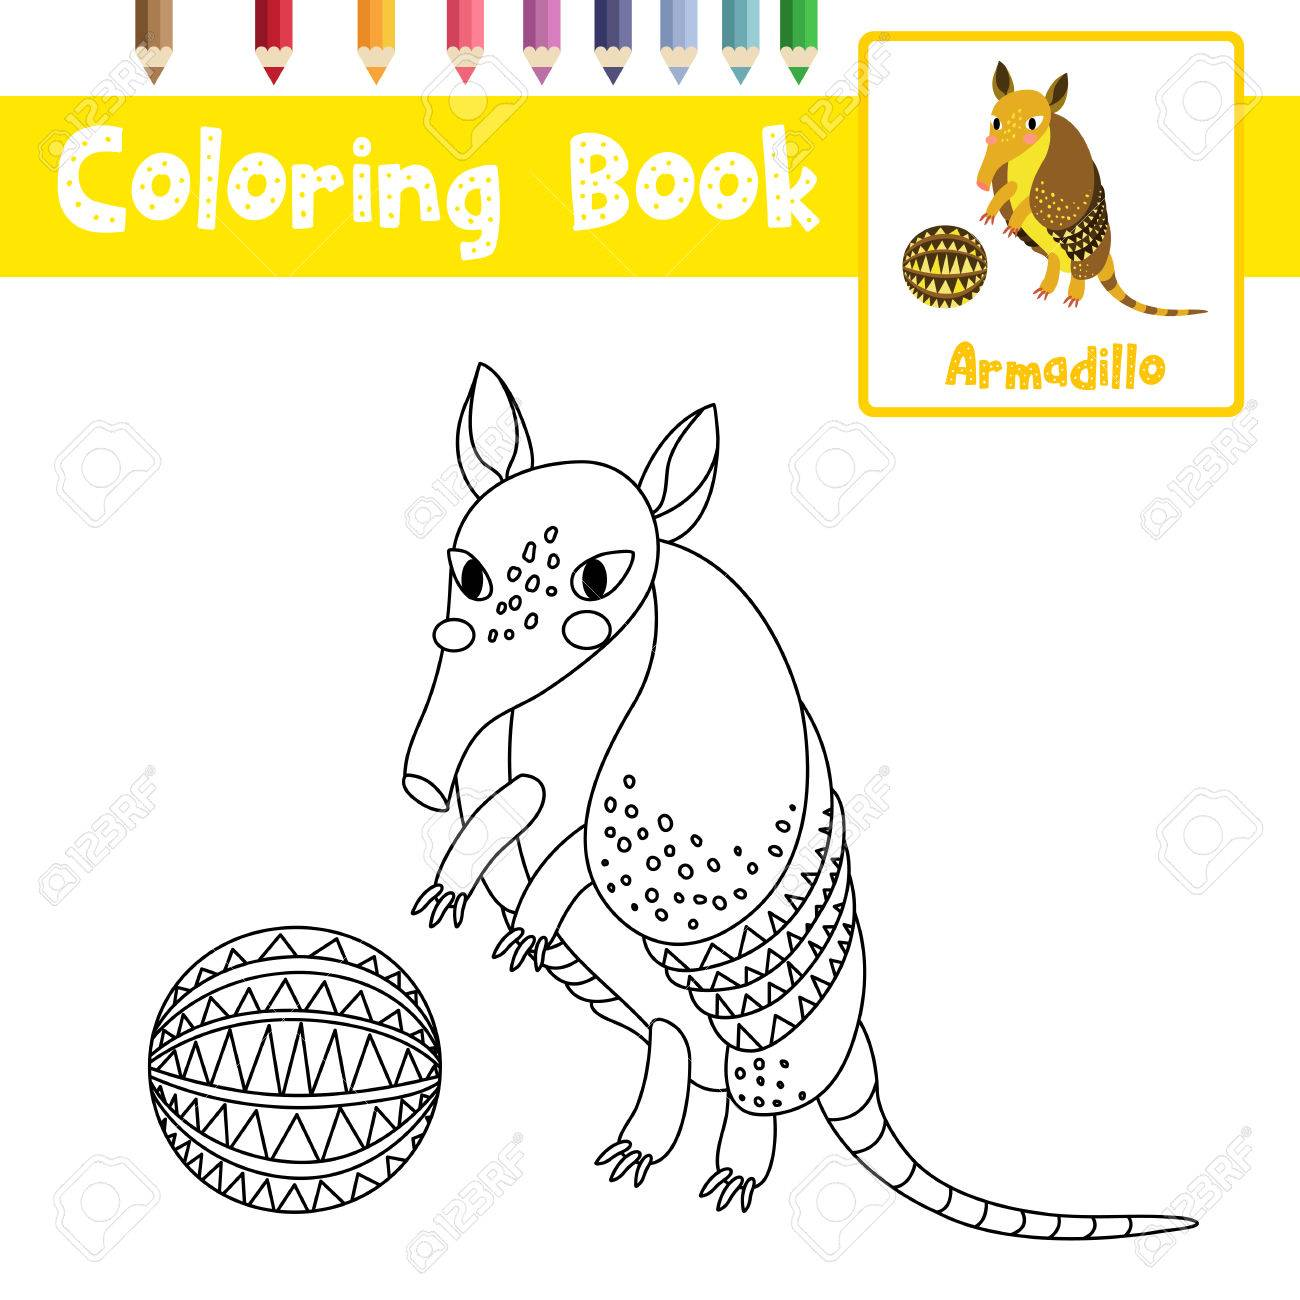 Coloring Page Of Standing Armadillo With Ball Animals For Preschool Kids  Activity Educational Worksheet. Vector